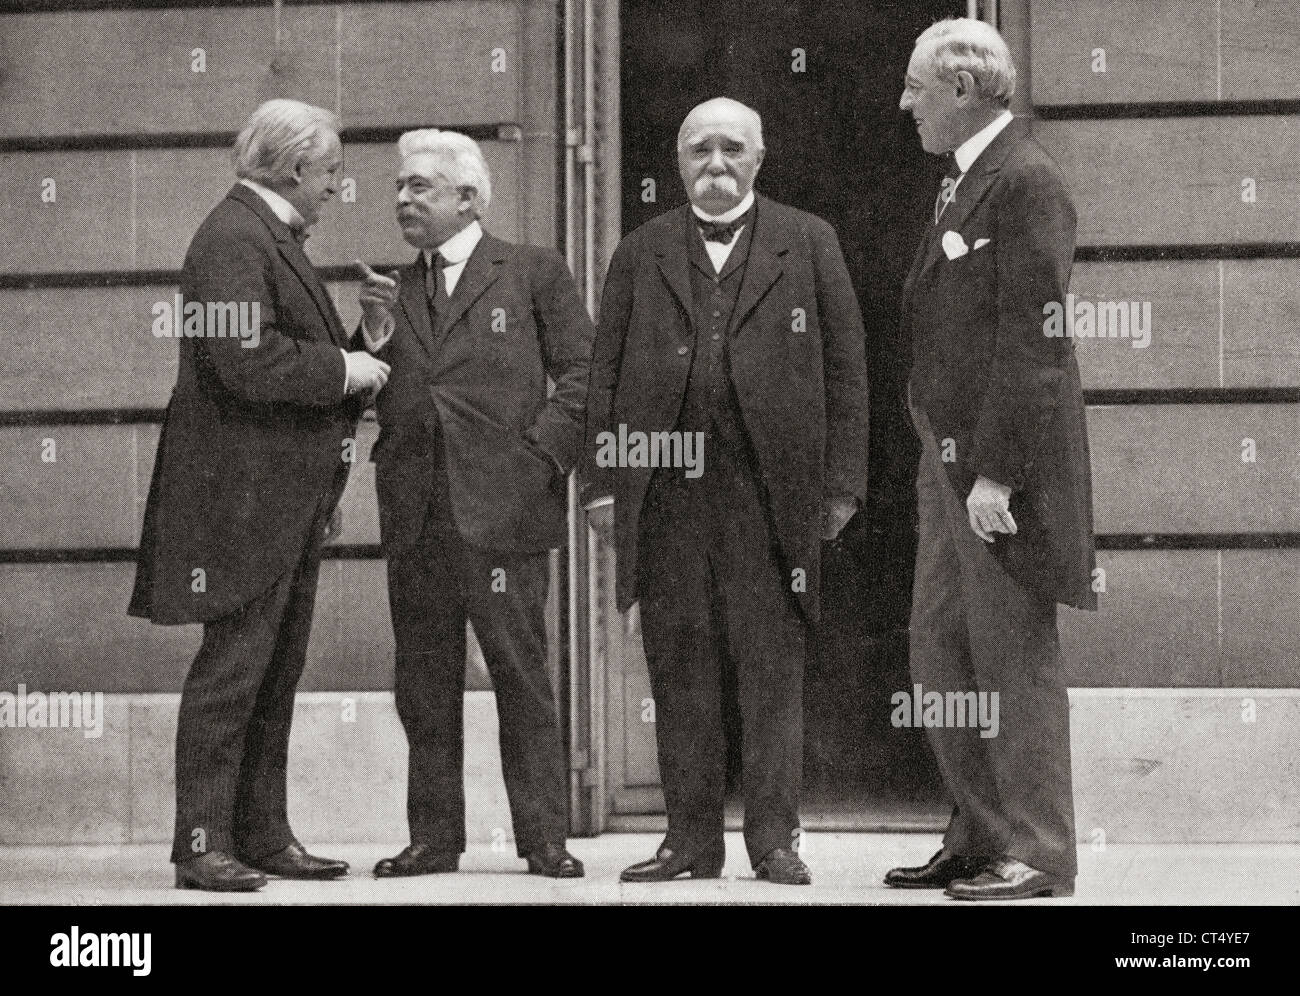 The Big Four At Versailles Peace Treaty From Left